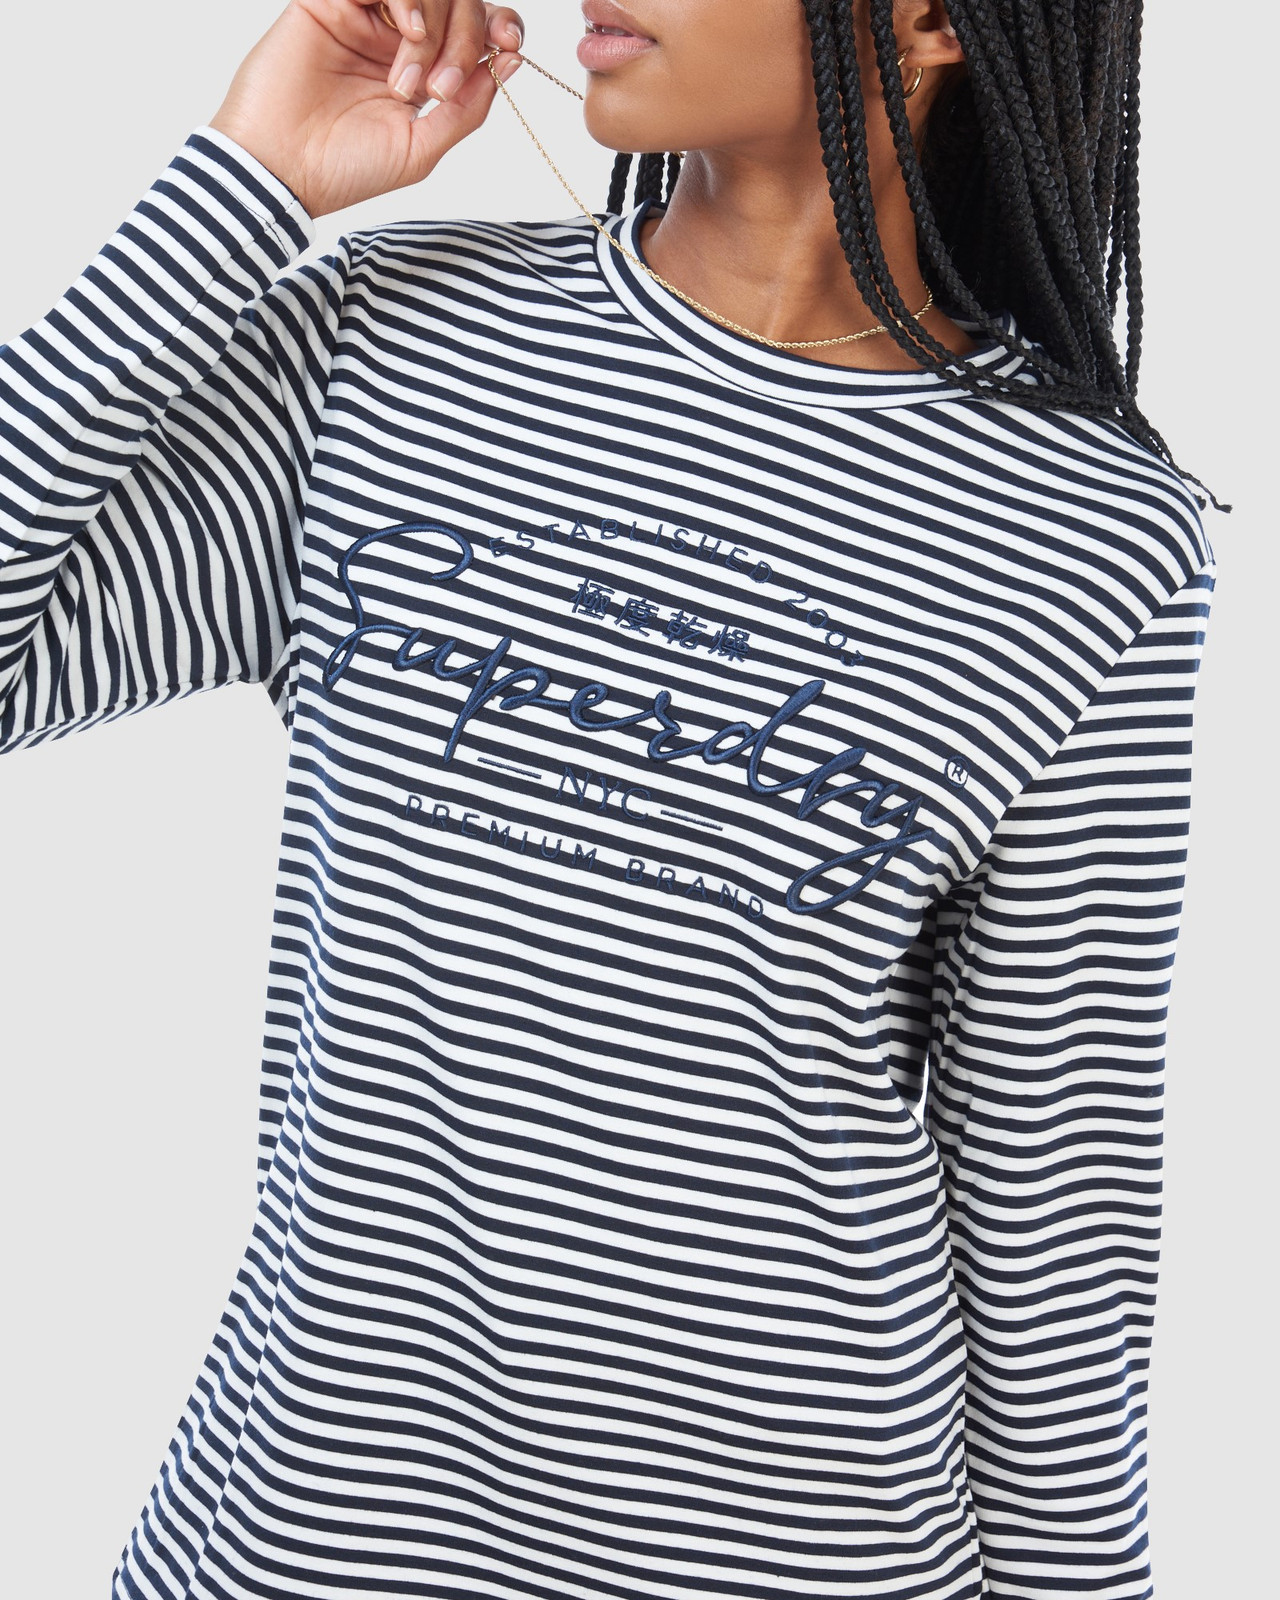 Superdry Womens STRIPE GRAPHIC NYC TOP Navy Long Sleeve Top 4